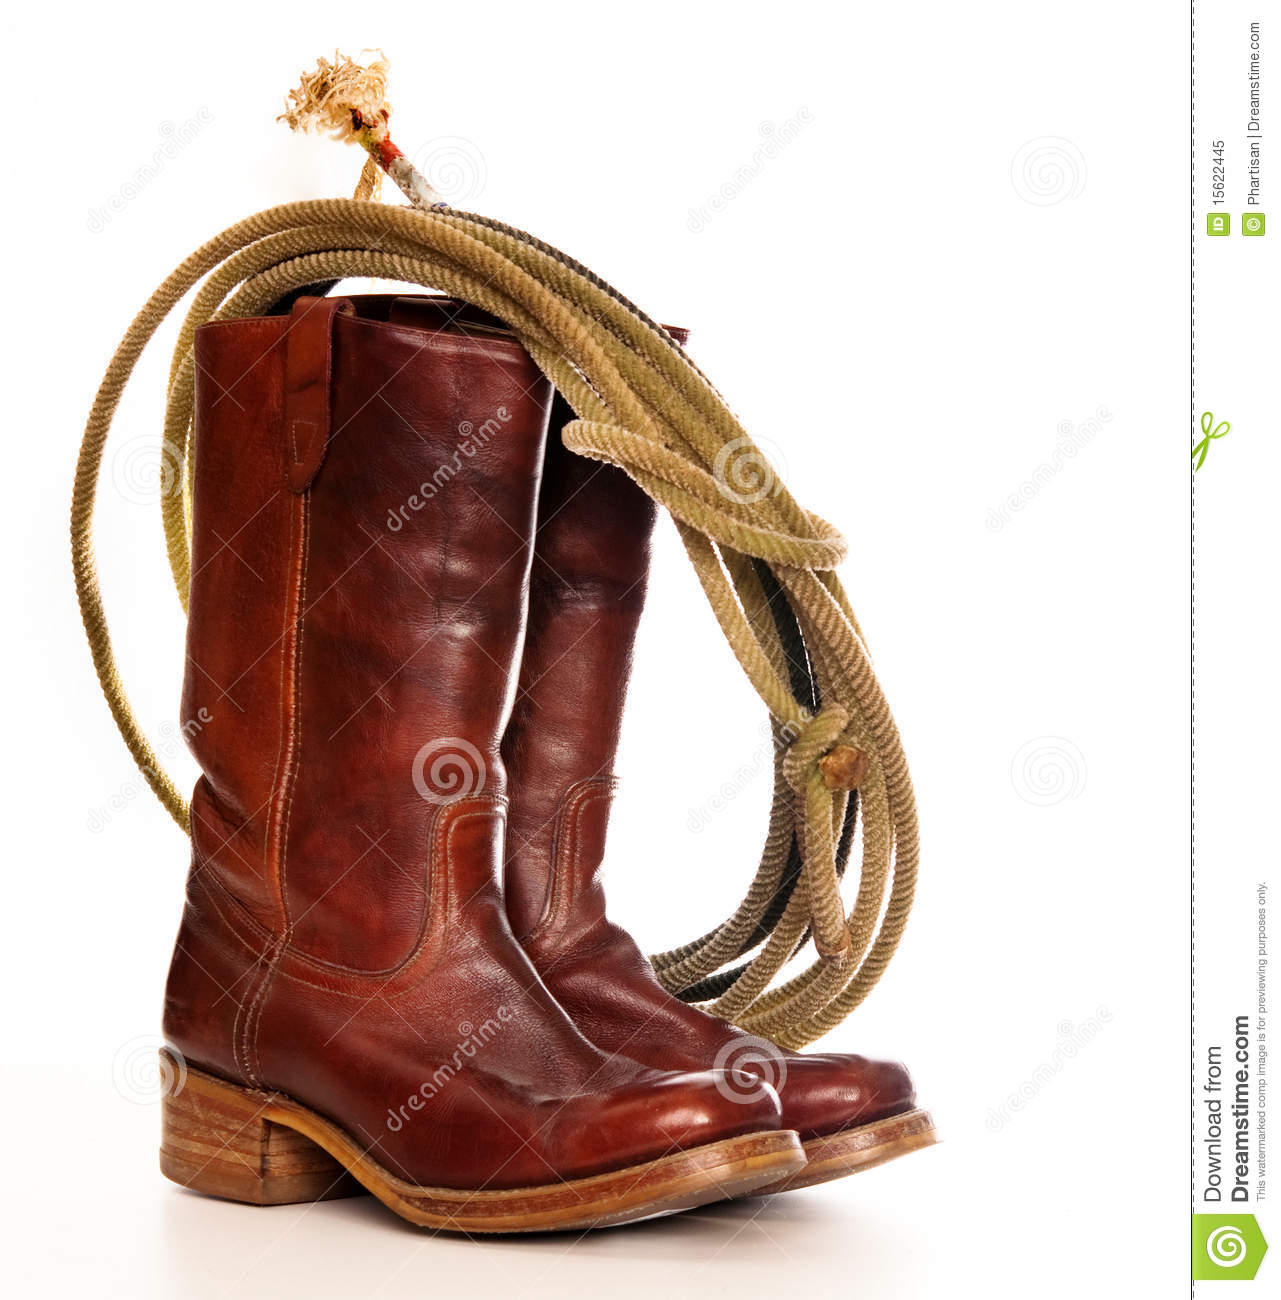 ... of a pair of brown cowboy boots and a Lasso on a white background